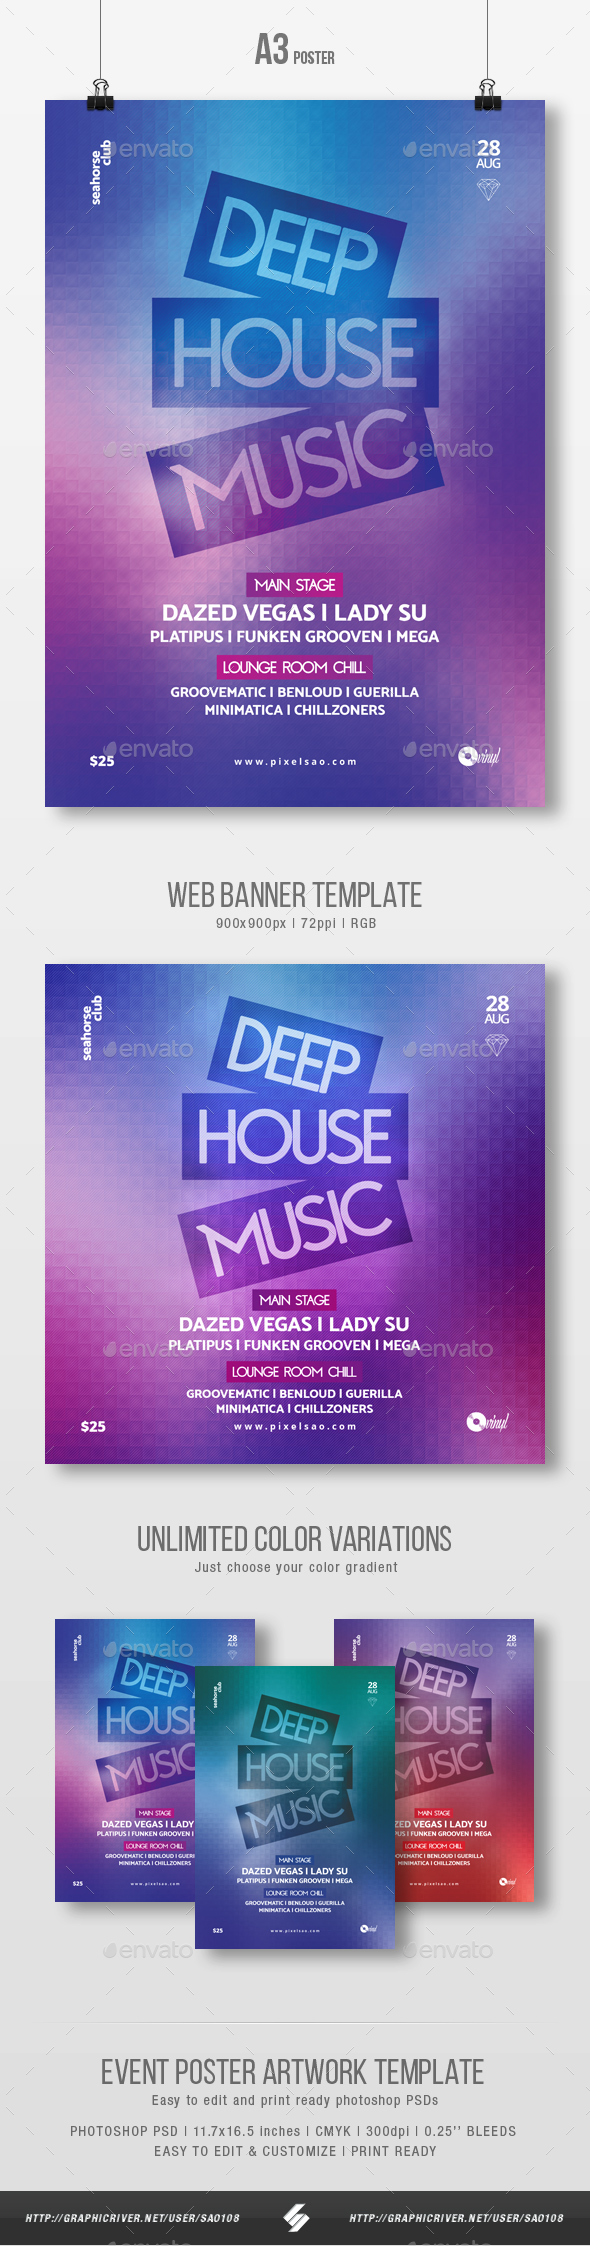 Deep house music party flyer poster template a3 by for Deep house music